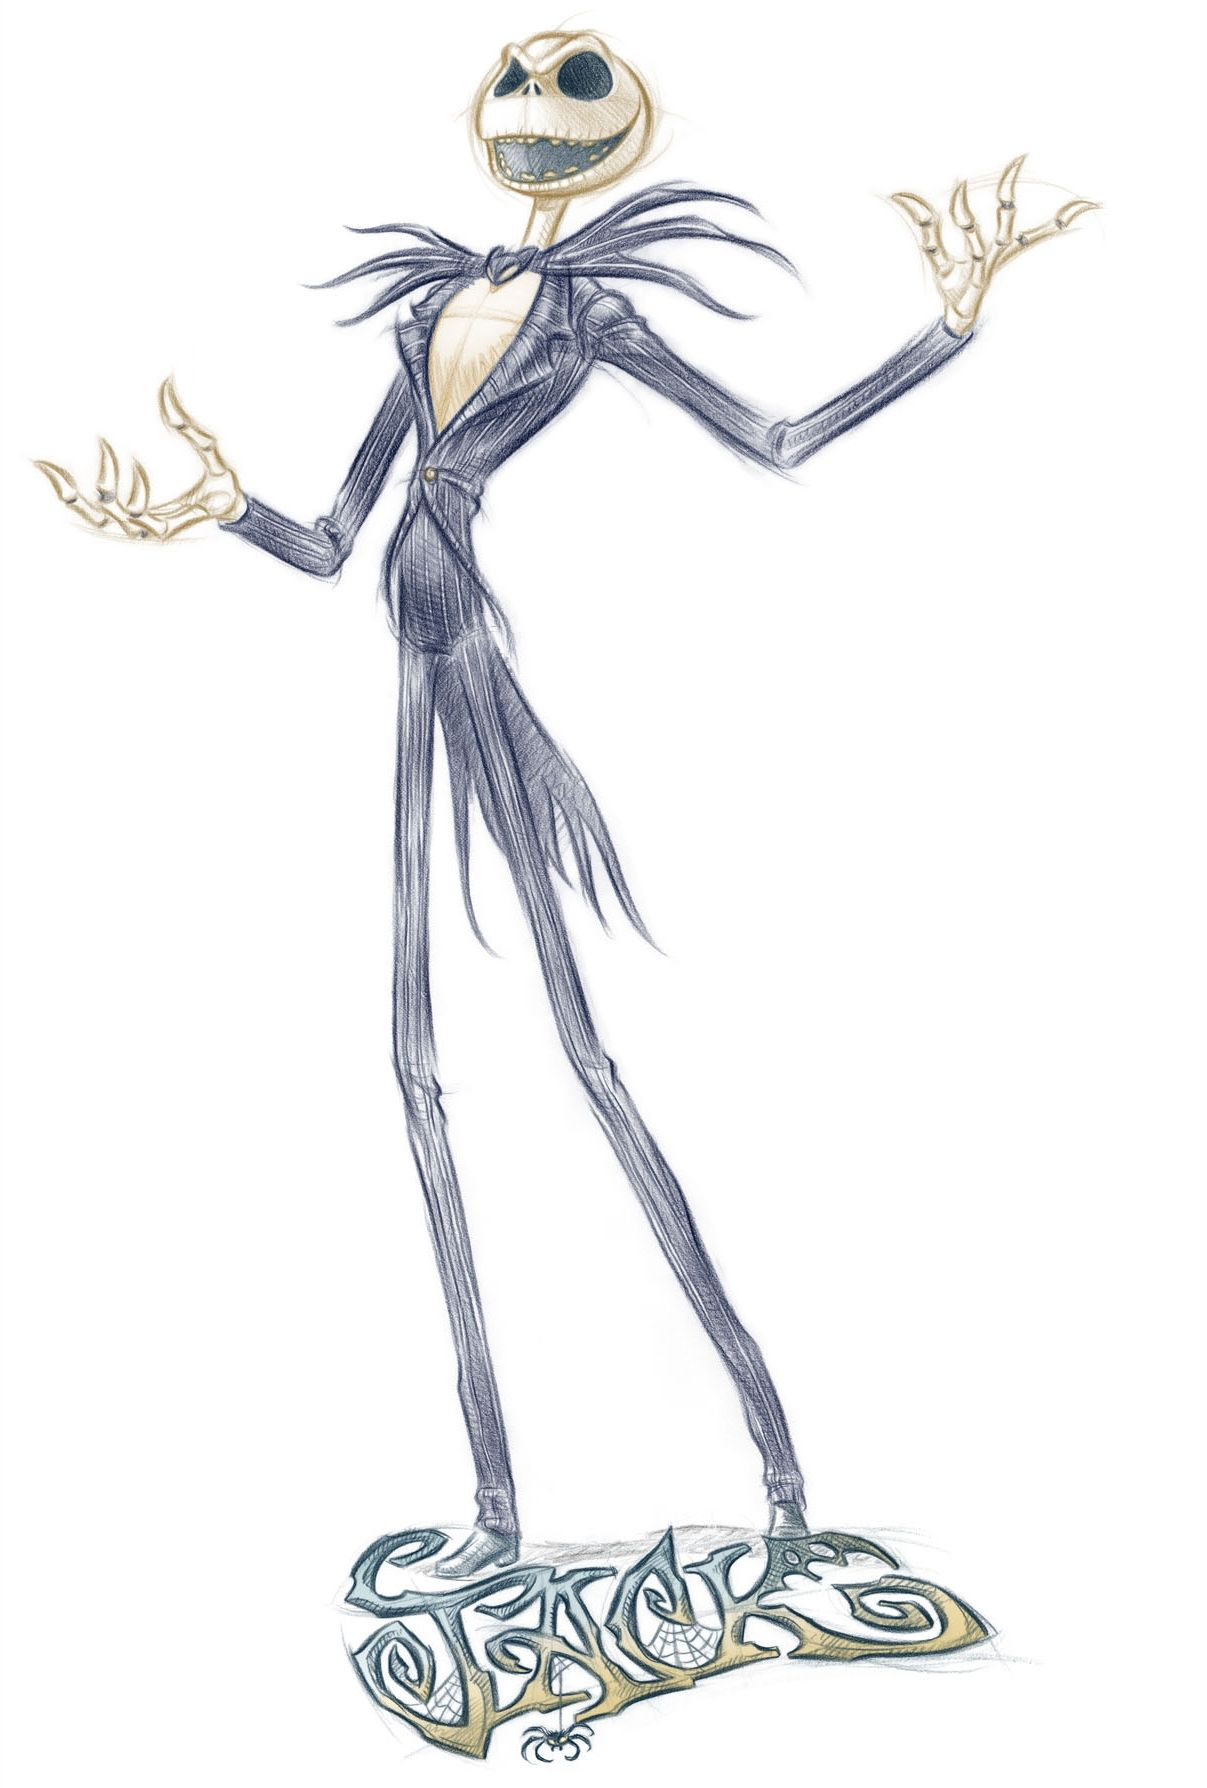 Jack By Pedro Astudillo Nightmare Before Christmas Drawings